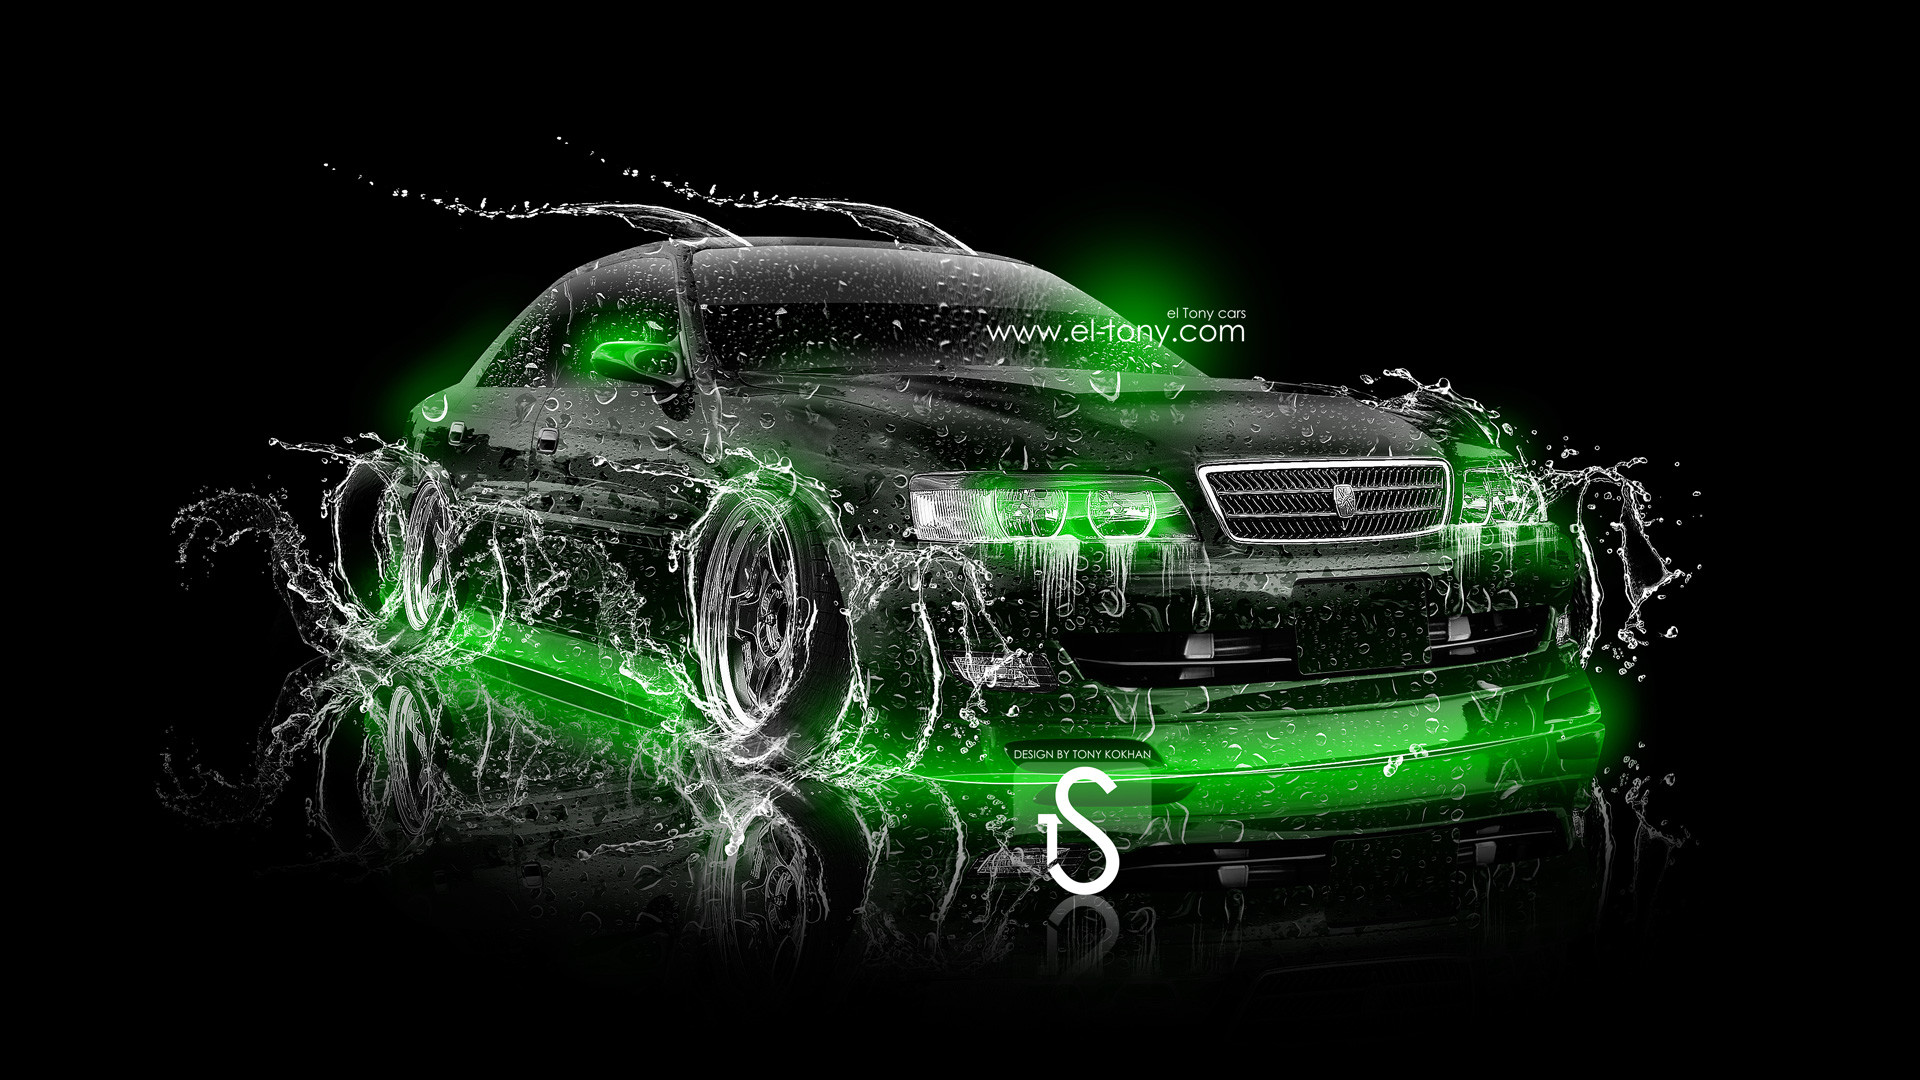 Res: 1920x1080, Neon Green Wallpaper High Quality